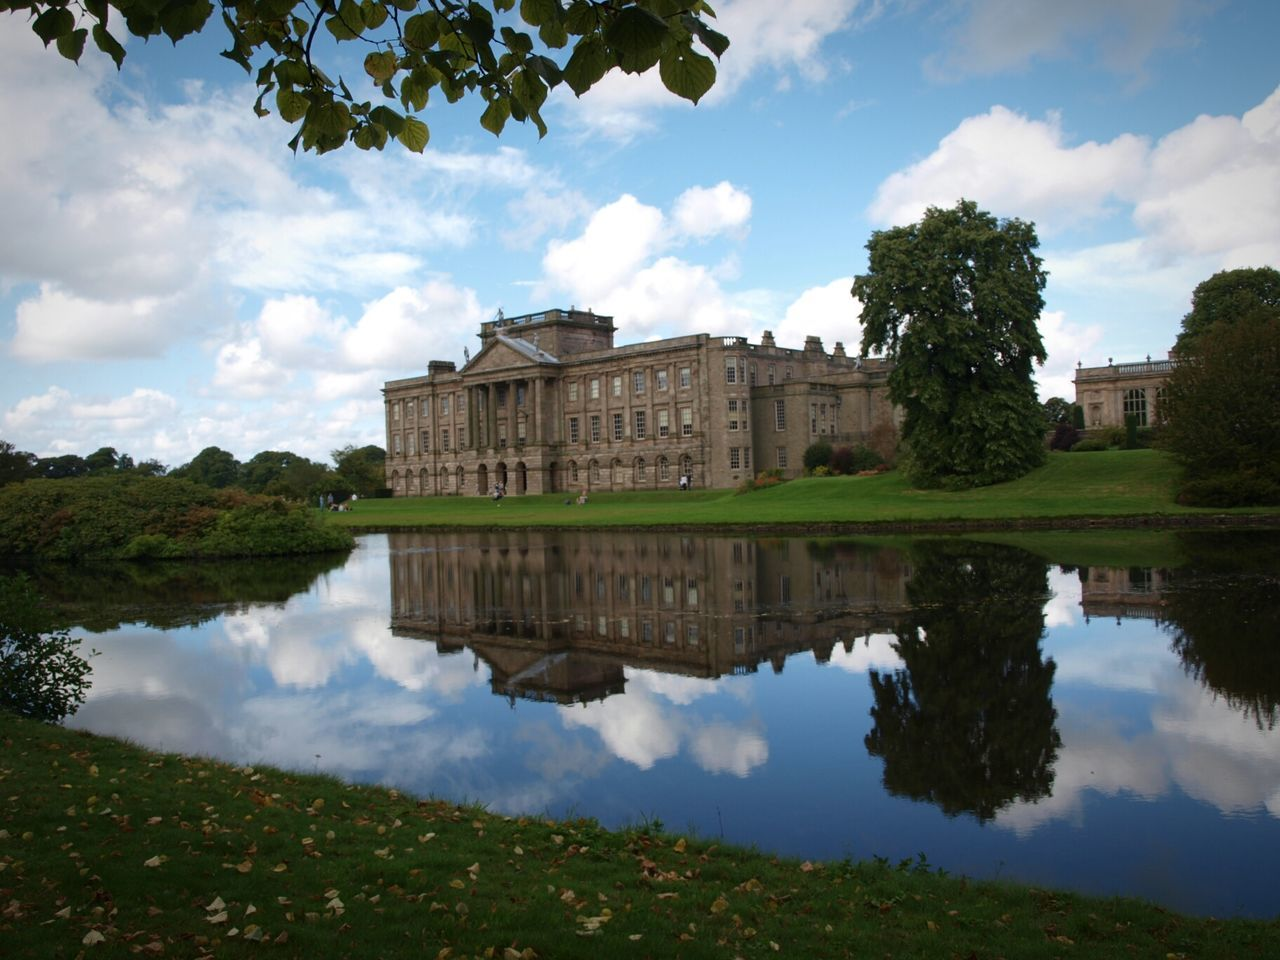 Architecture Building Exterior Lake Water Reflection Sky Tree Historical Building Architecture House Reflections Impressive Locations Gardens Still Water Famous Place Lyme Park Cheshire